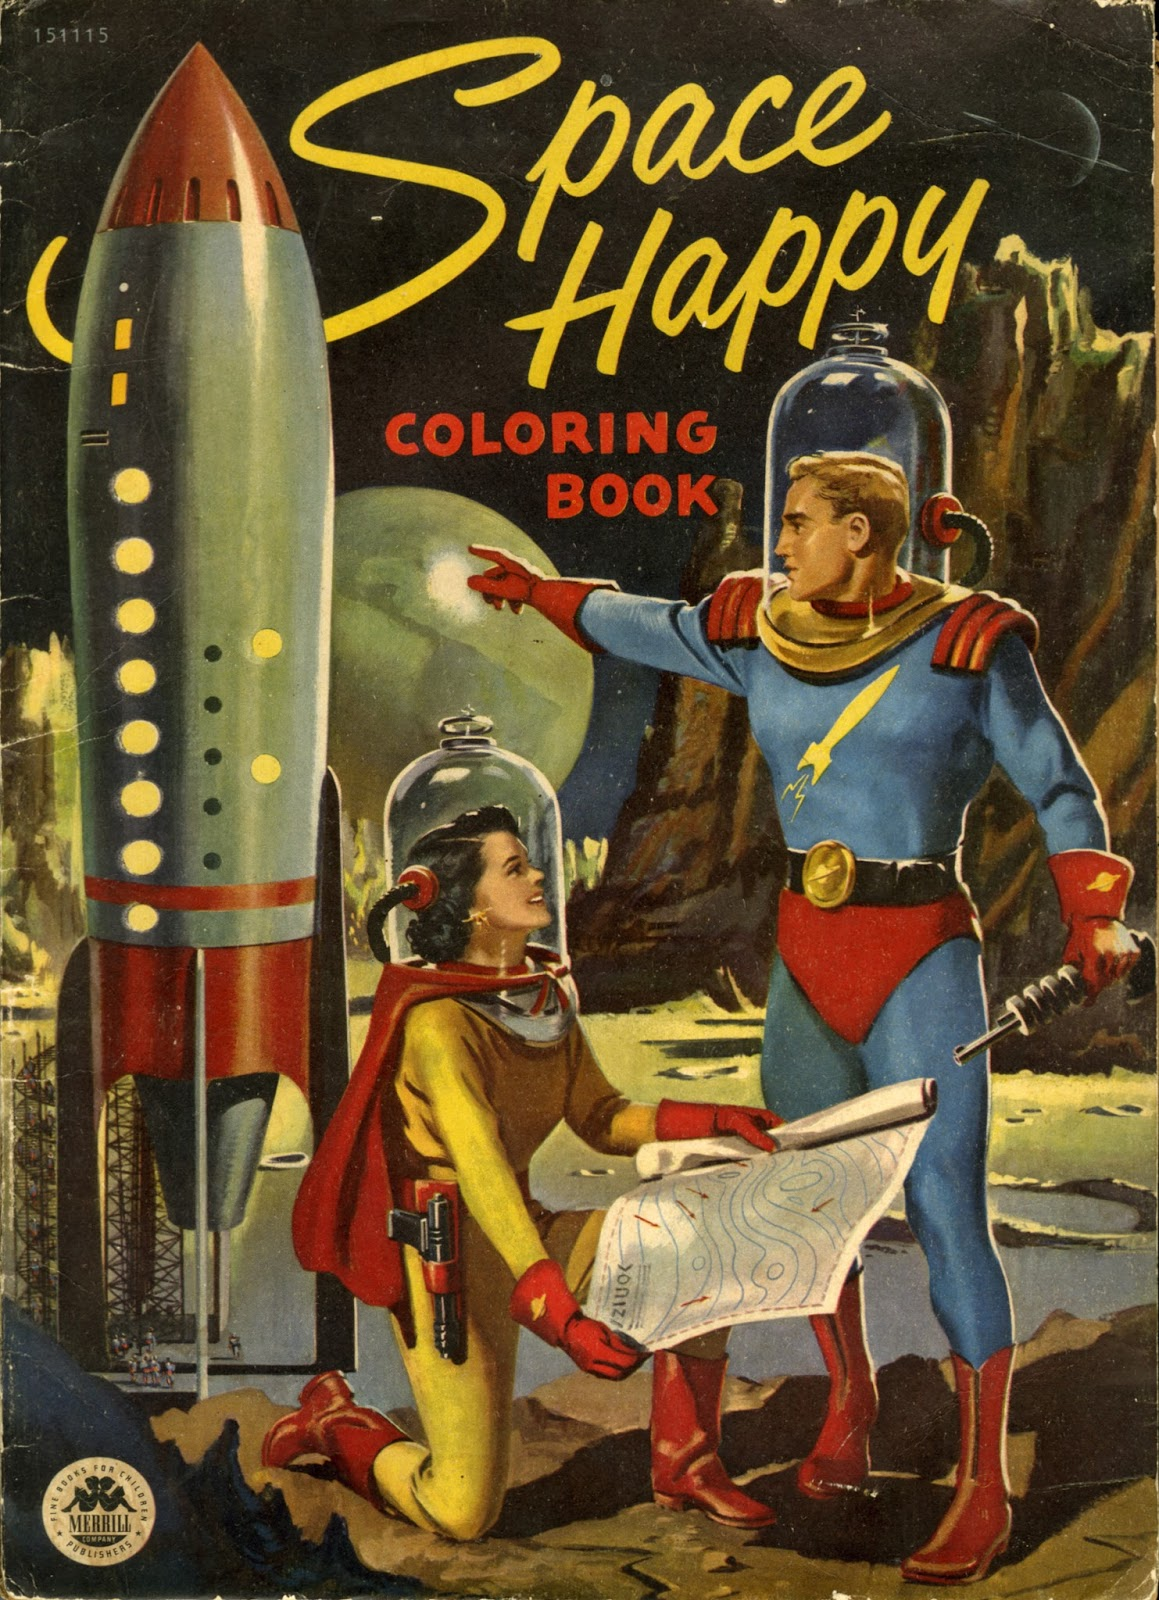 SPACE HAPPY 1953